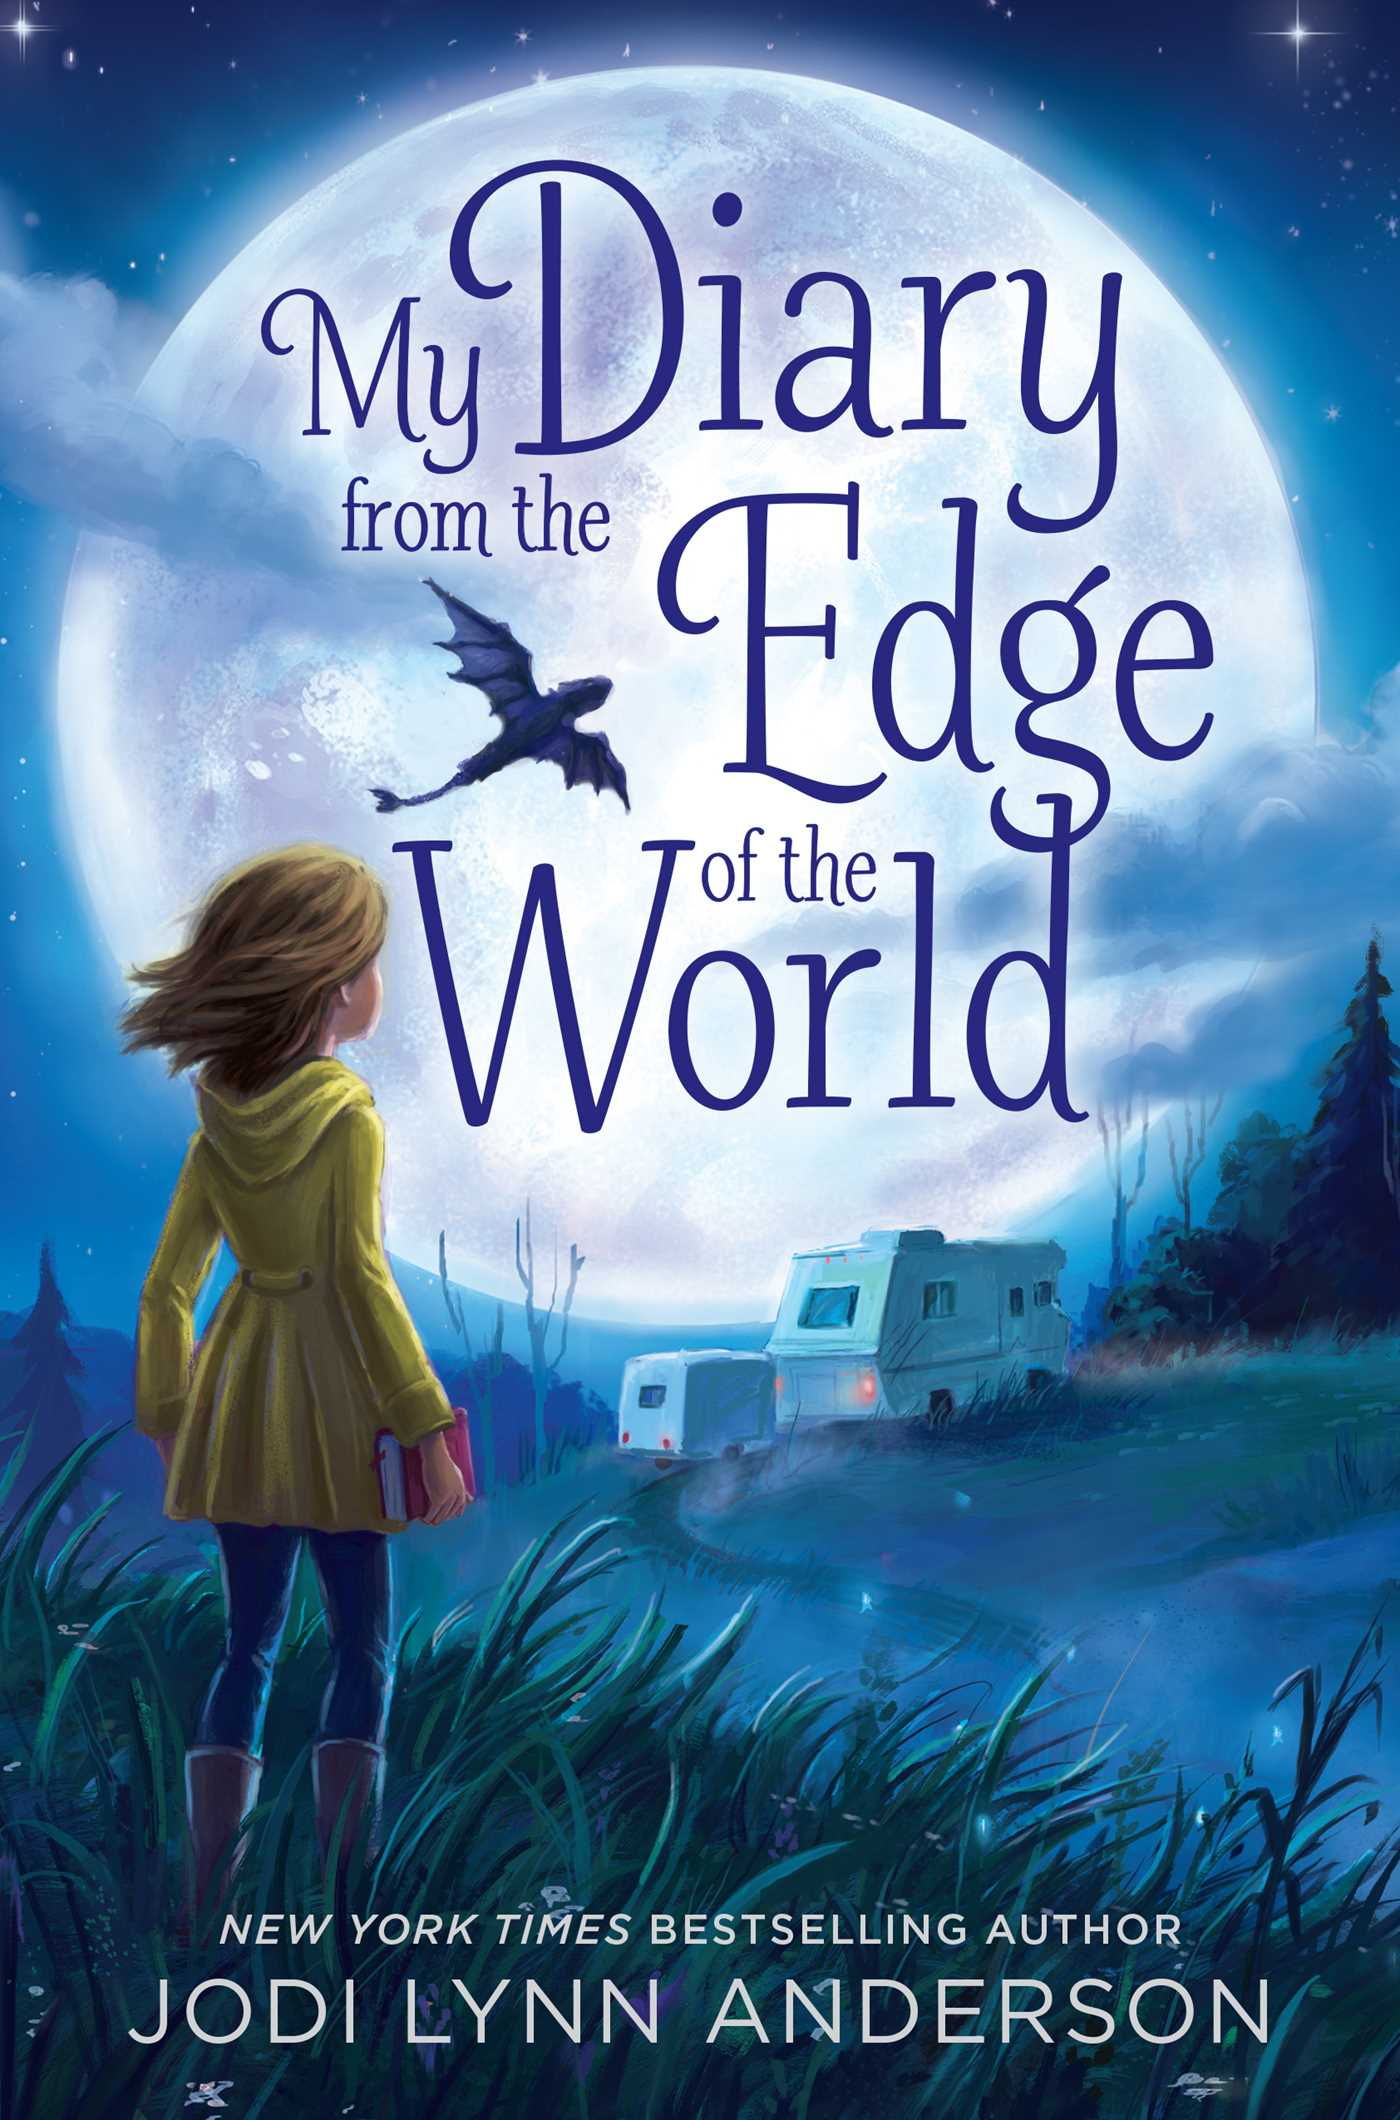 My diary from the edge of the world 9781442483880 hr